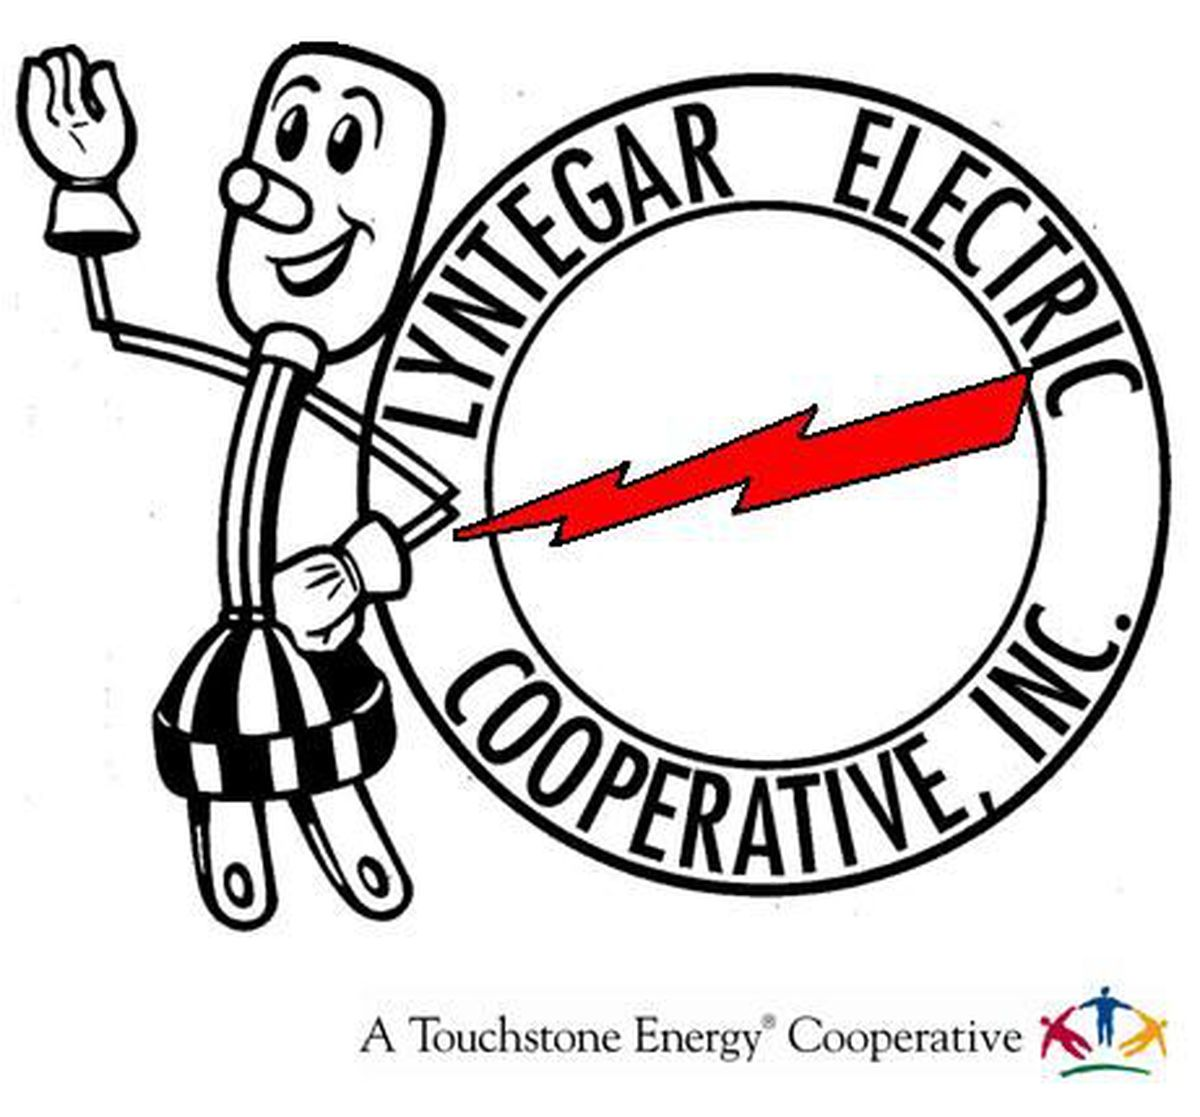 Lyntegar Electric Coop. Inc. will not send employees into